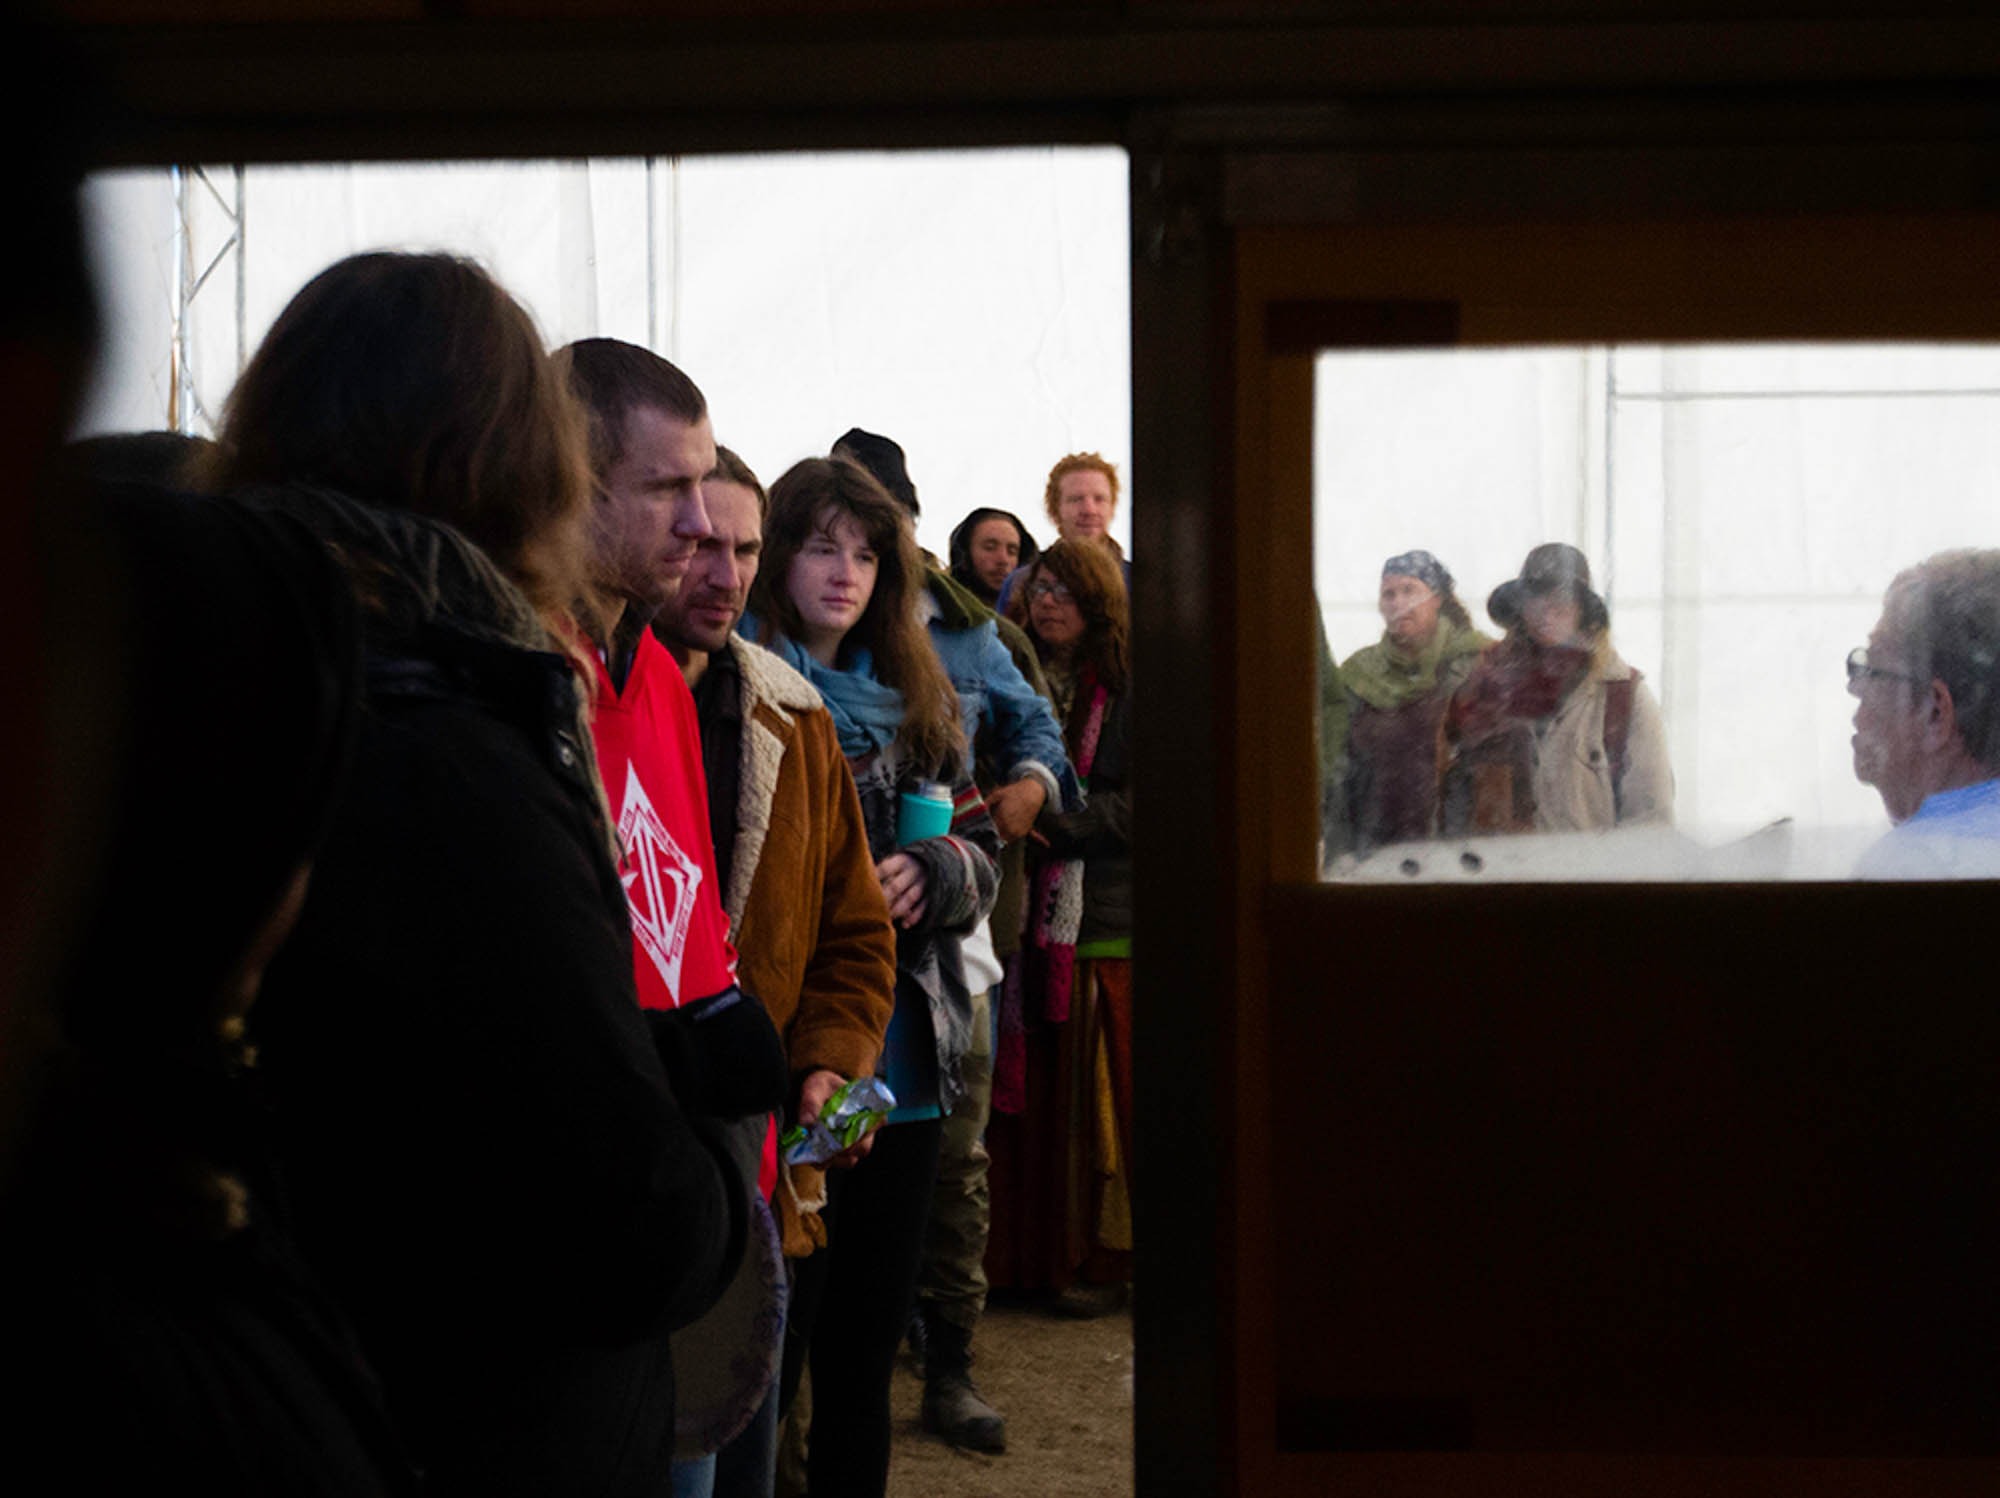 Campers at the Oceti Sakowin wait in line for breakfast at one of the few kitchens in the campsite.